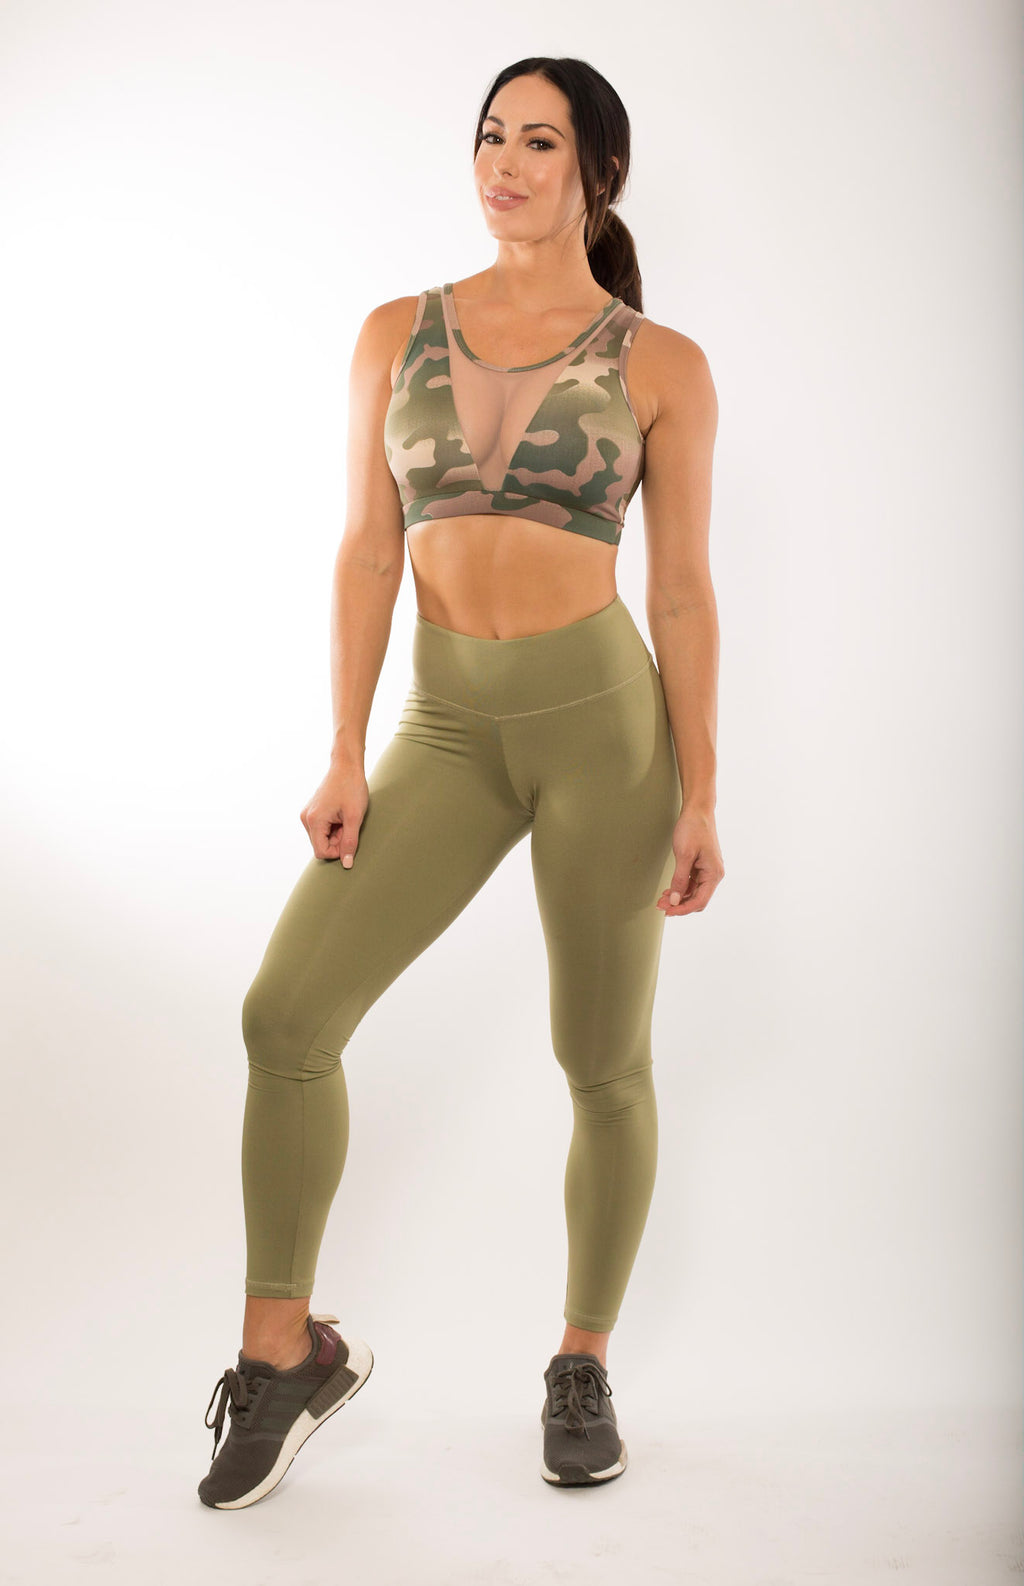 SIMPLICITY OLIVE HIGH WAIST LEGGINGS